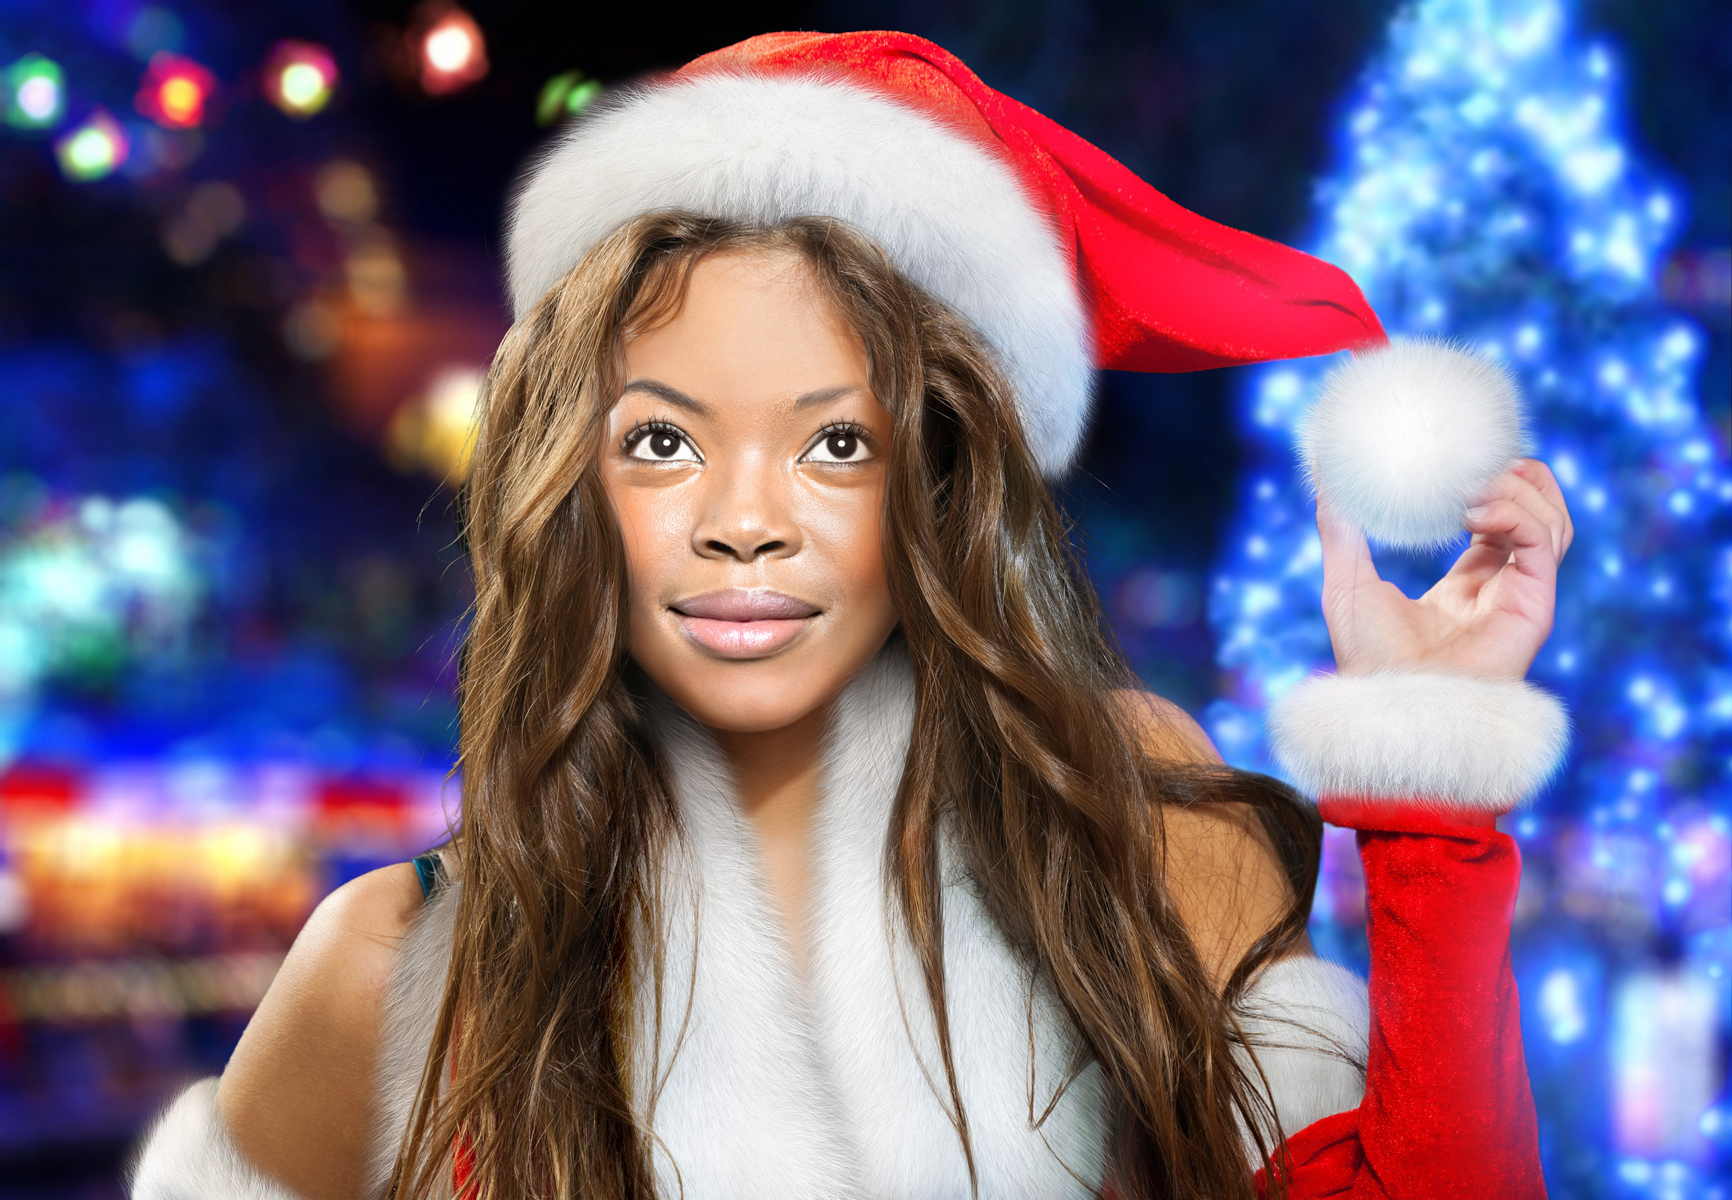 Santa yourself for girls: put your face on Christmas girl